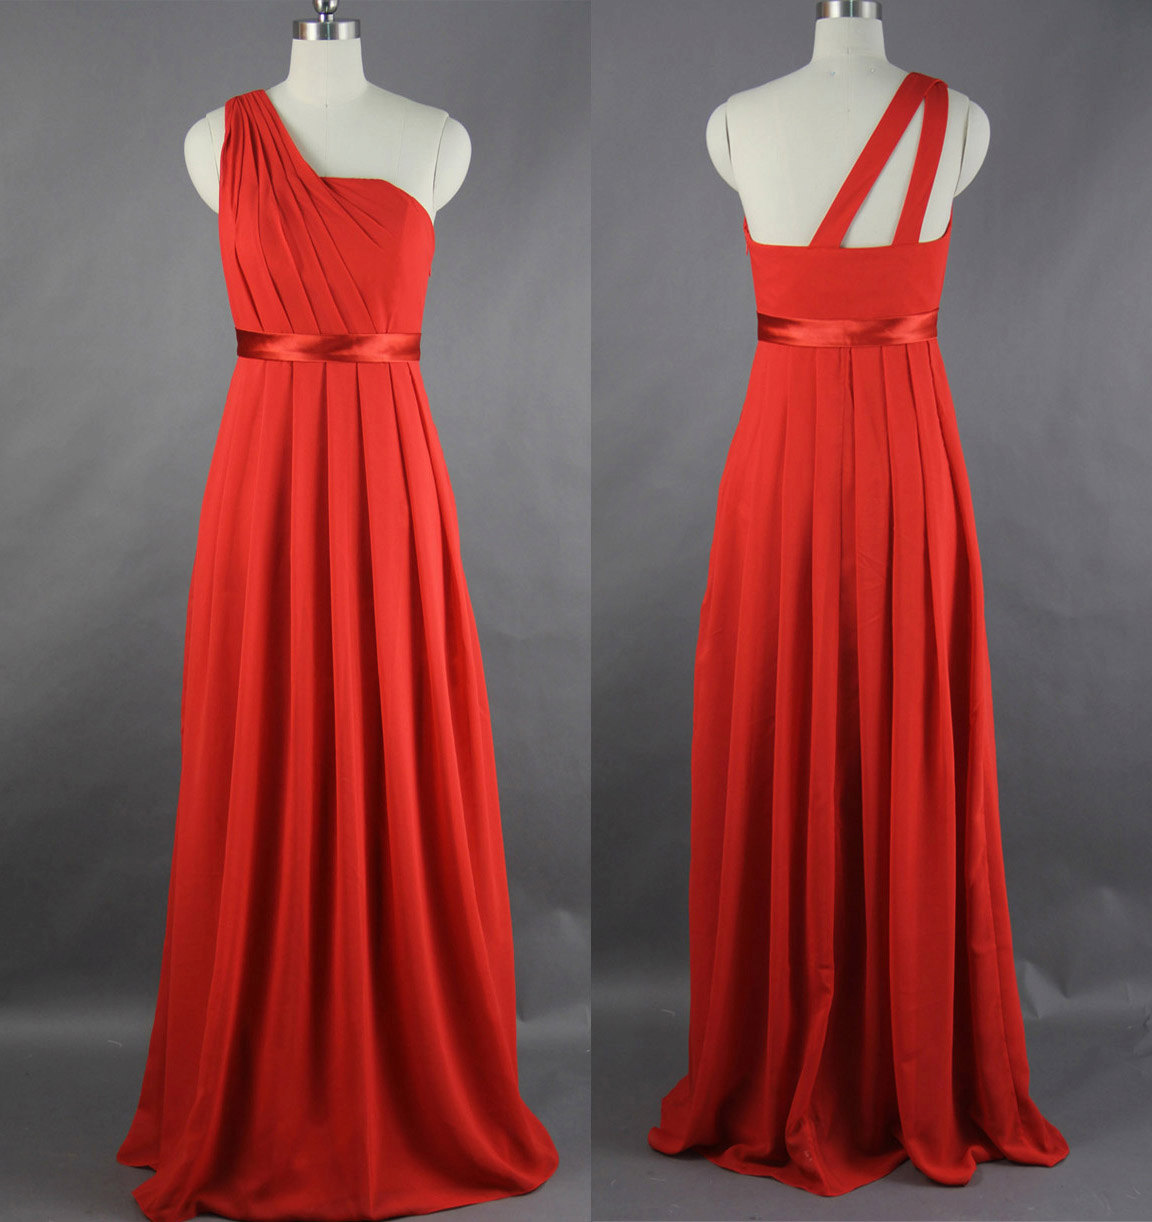 Gina maybeyou can get in the peach color or champagne one shoulder